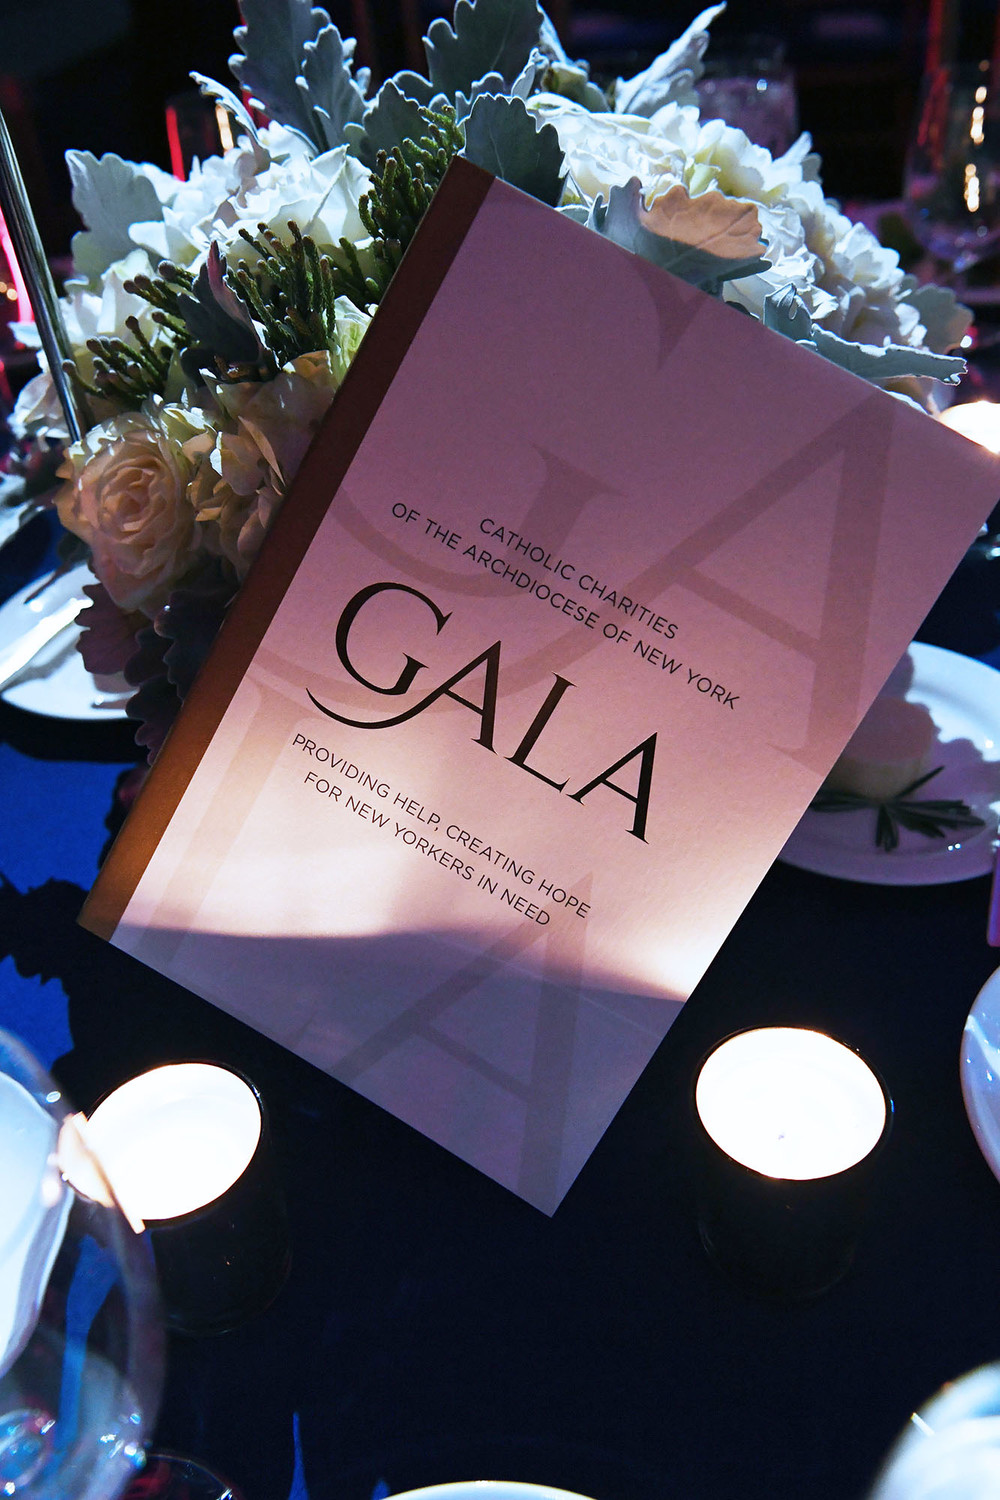 A gala program outlines the evening's events.